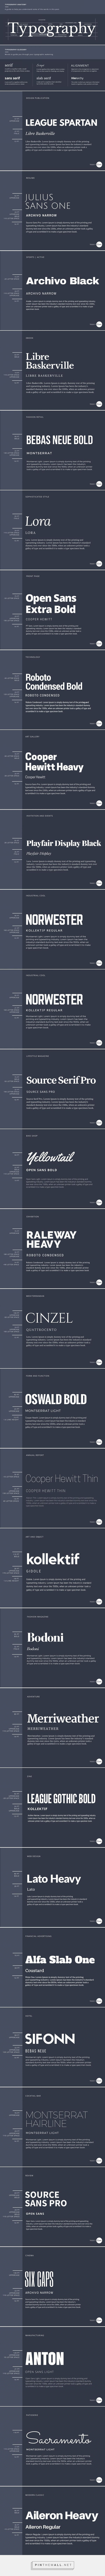 The Ultimate Guide to Font Pairing - https://designschool.canva.com/blog/the-ultimate-guide-to-font-pairing/